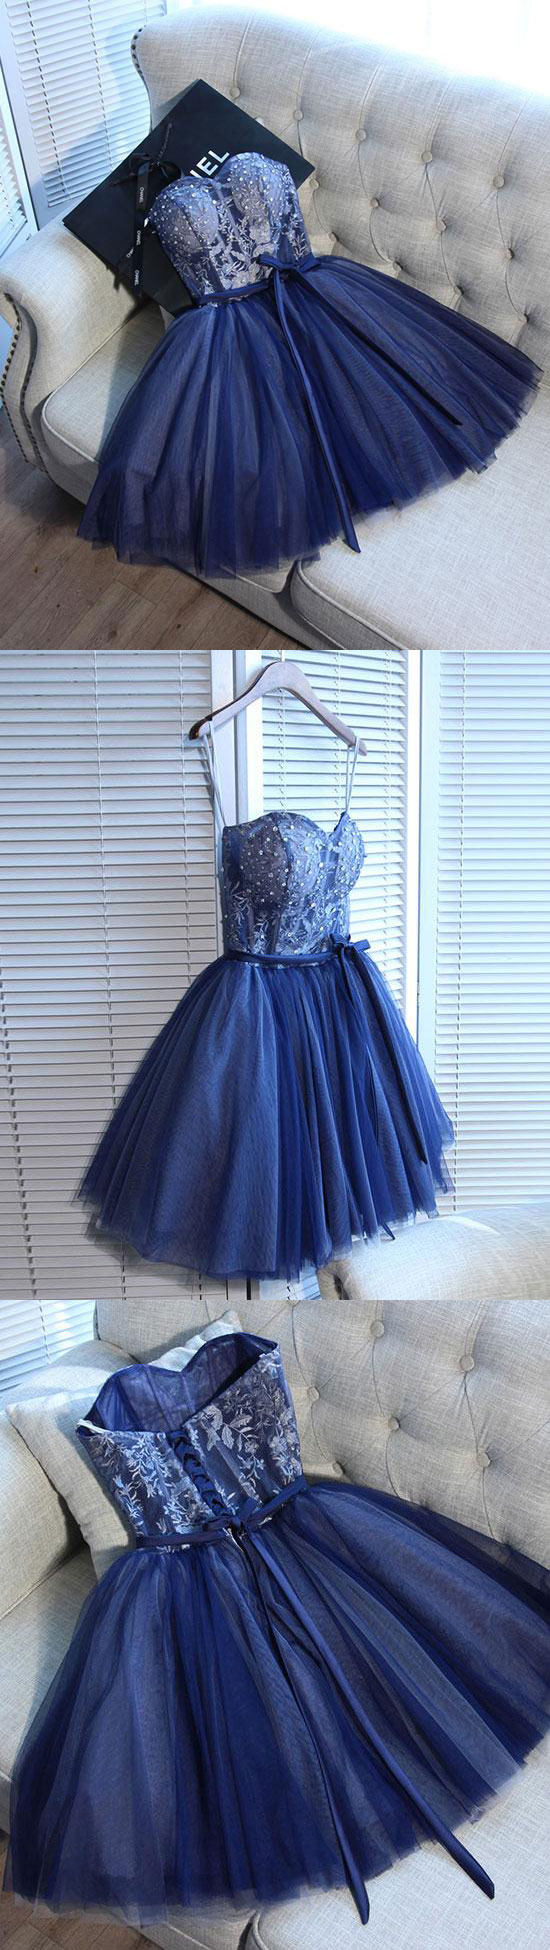 Blue sweetheart tulle lace short prom dress homecoming dress